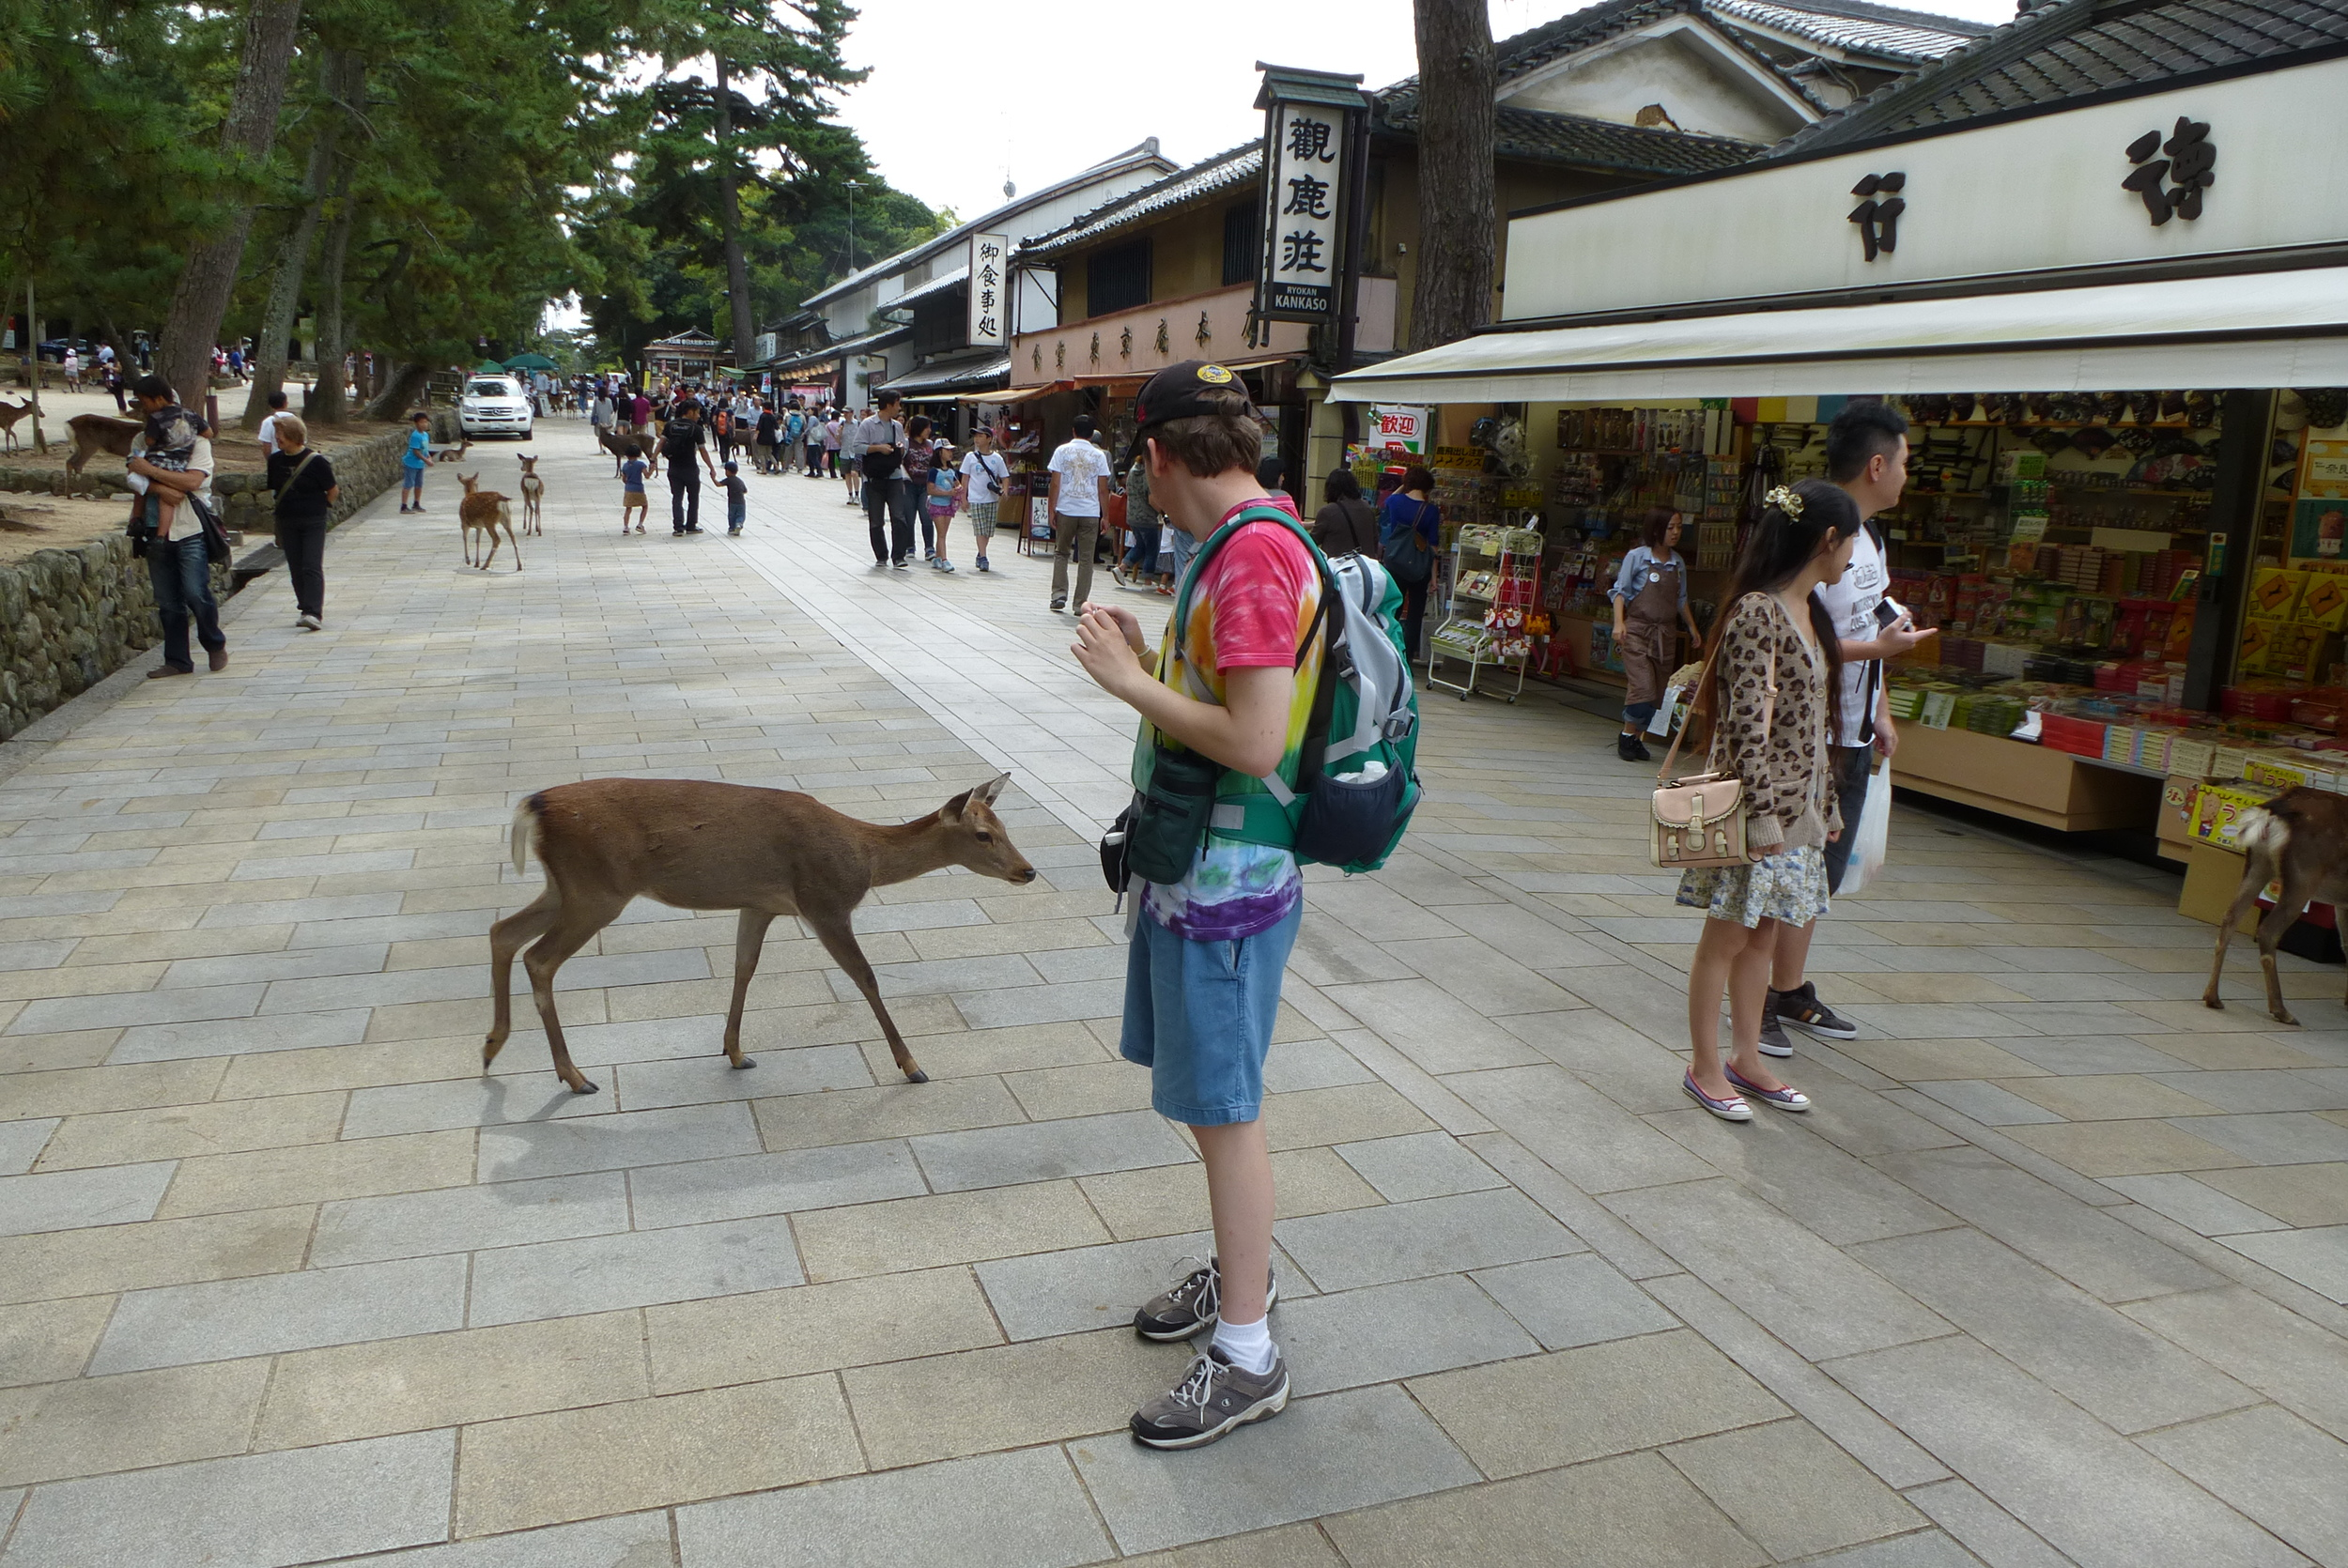 The deer were actually very polite